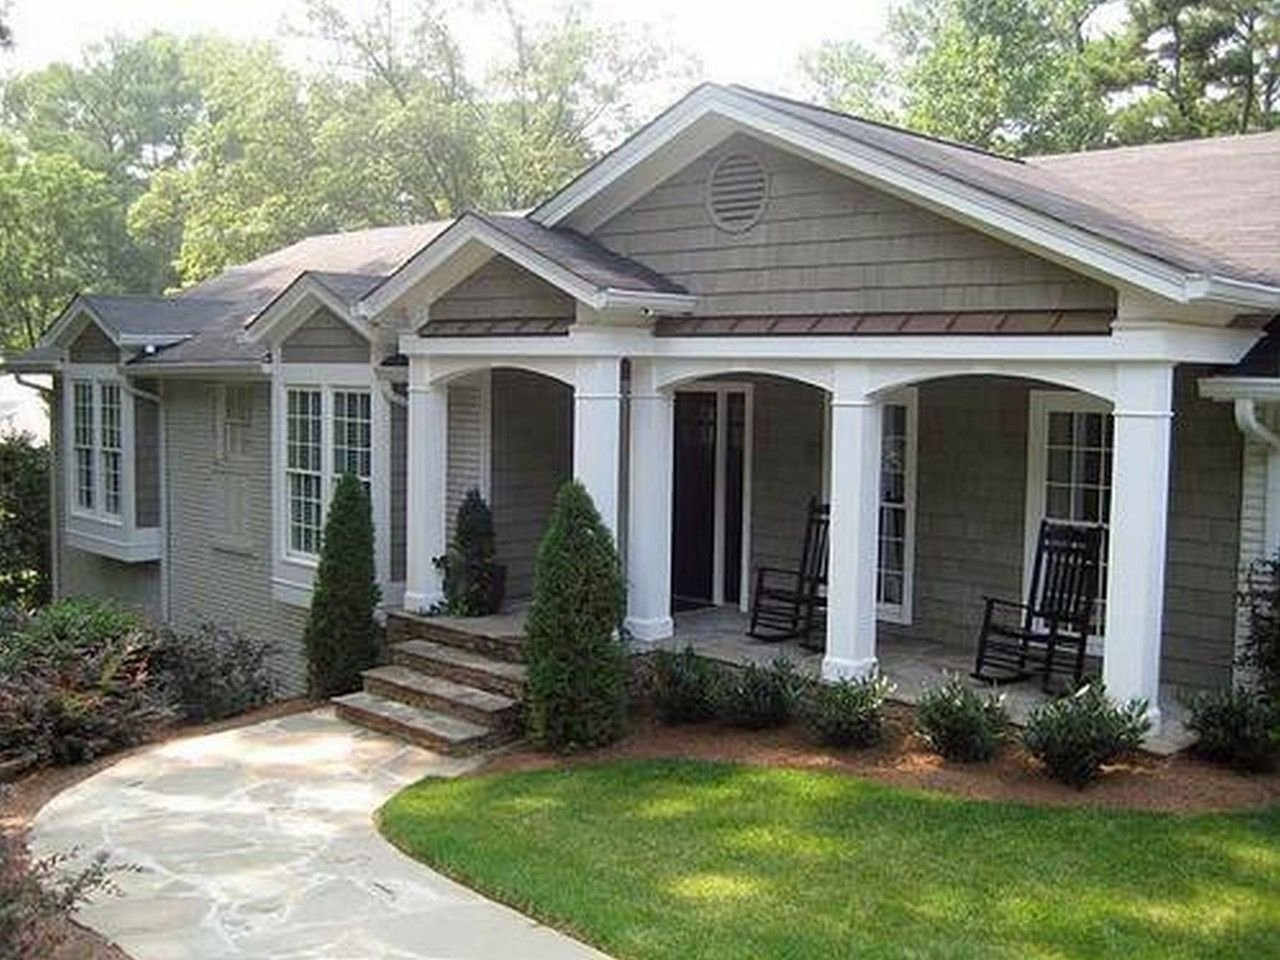 10 Stylish Front Porch Ideas For Ranch Style Homes 2020